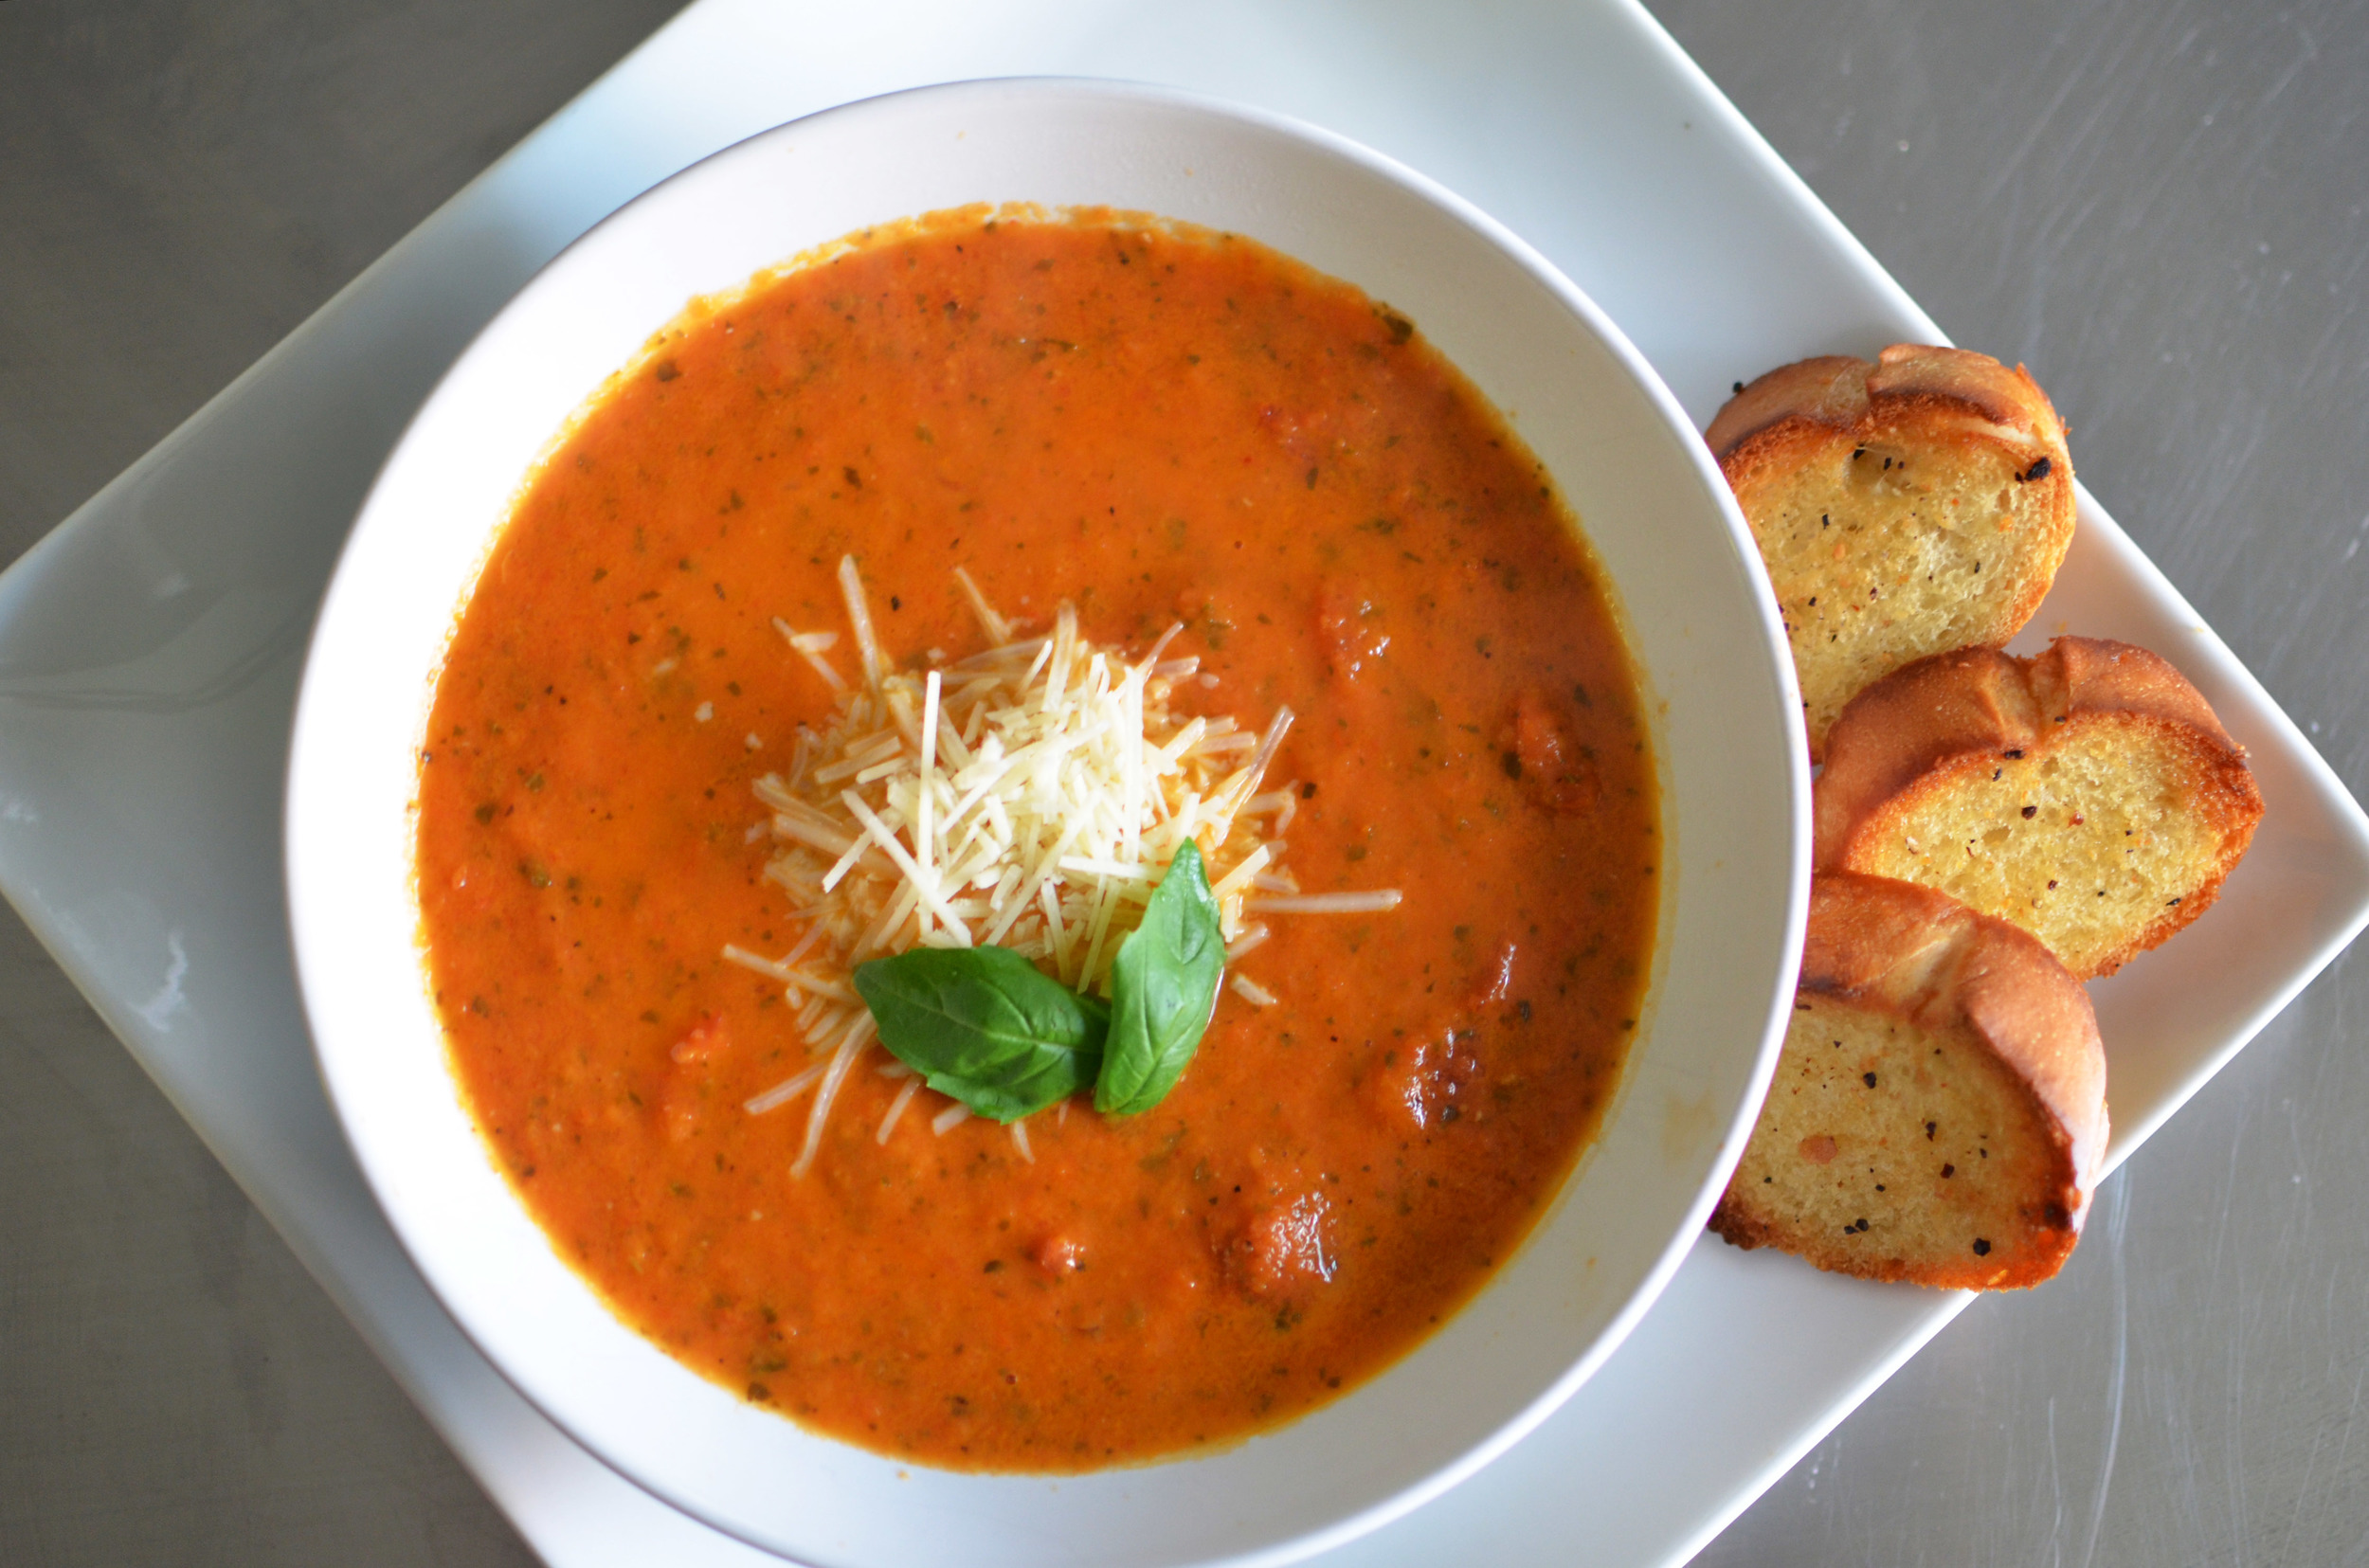 Roasted Tomatoes Ina Garten tomato-basil soup recipe (ina garten/chrissy teigen) — the glossier